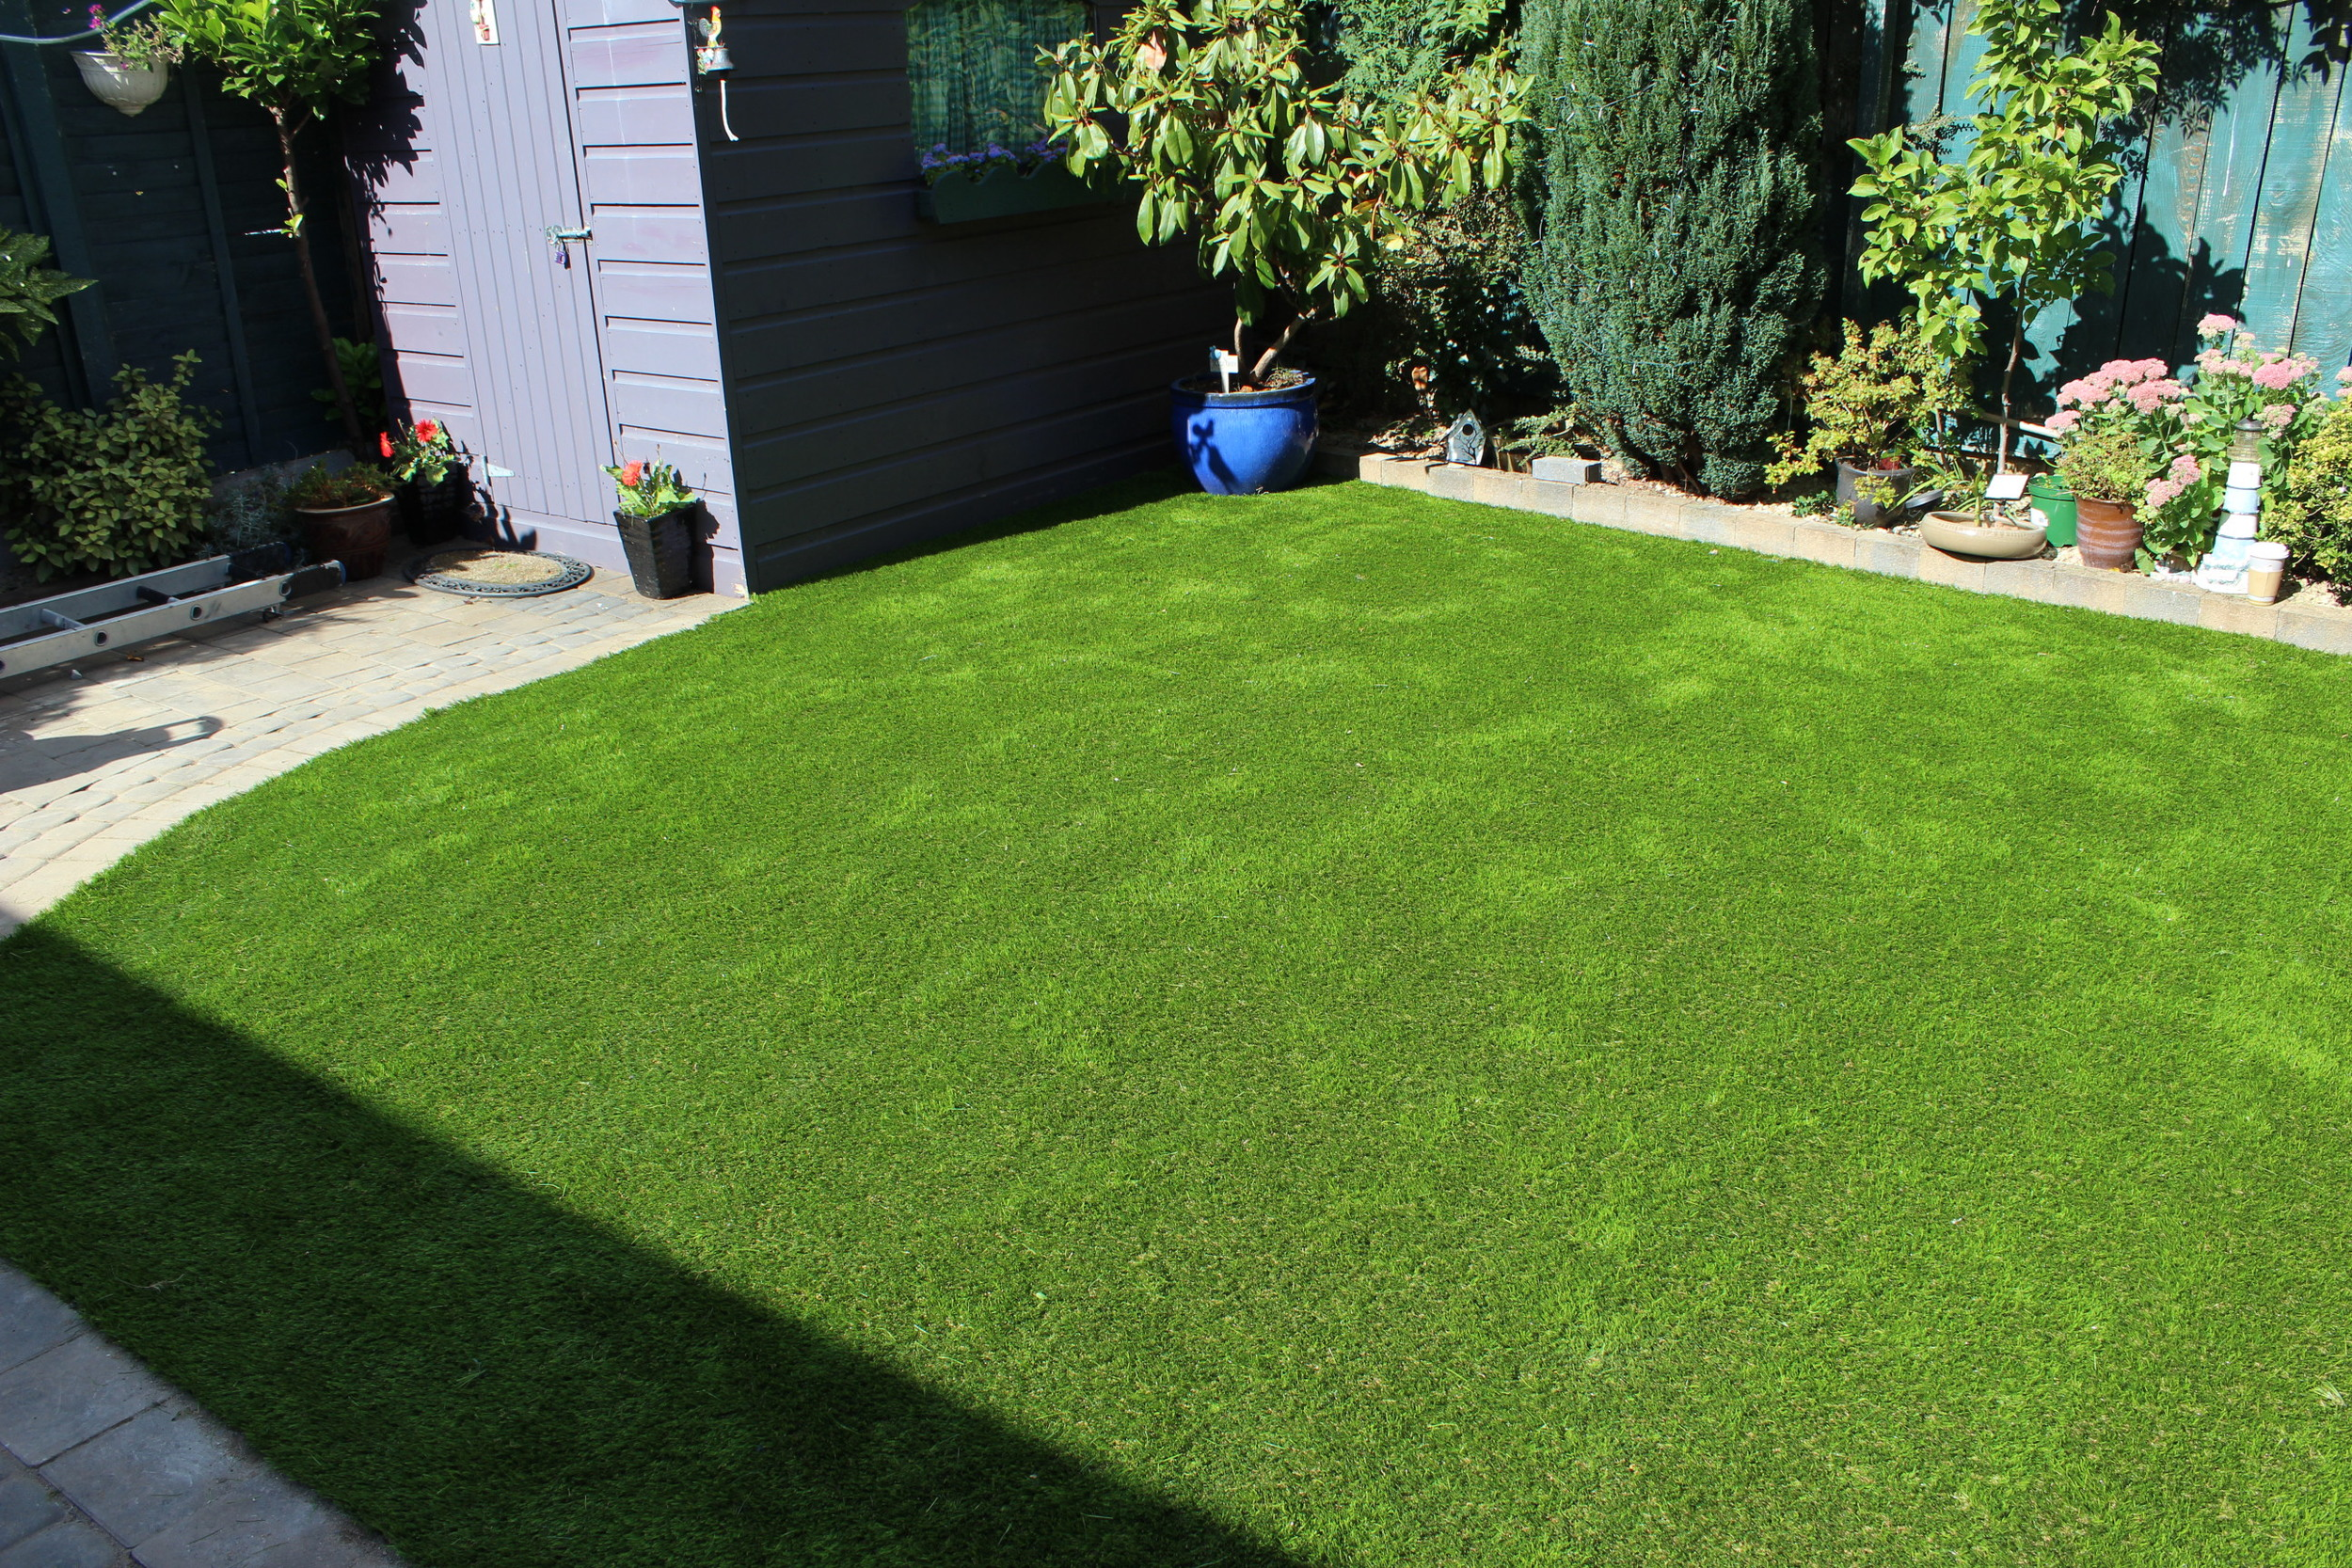 new astroturf lawn